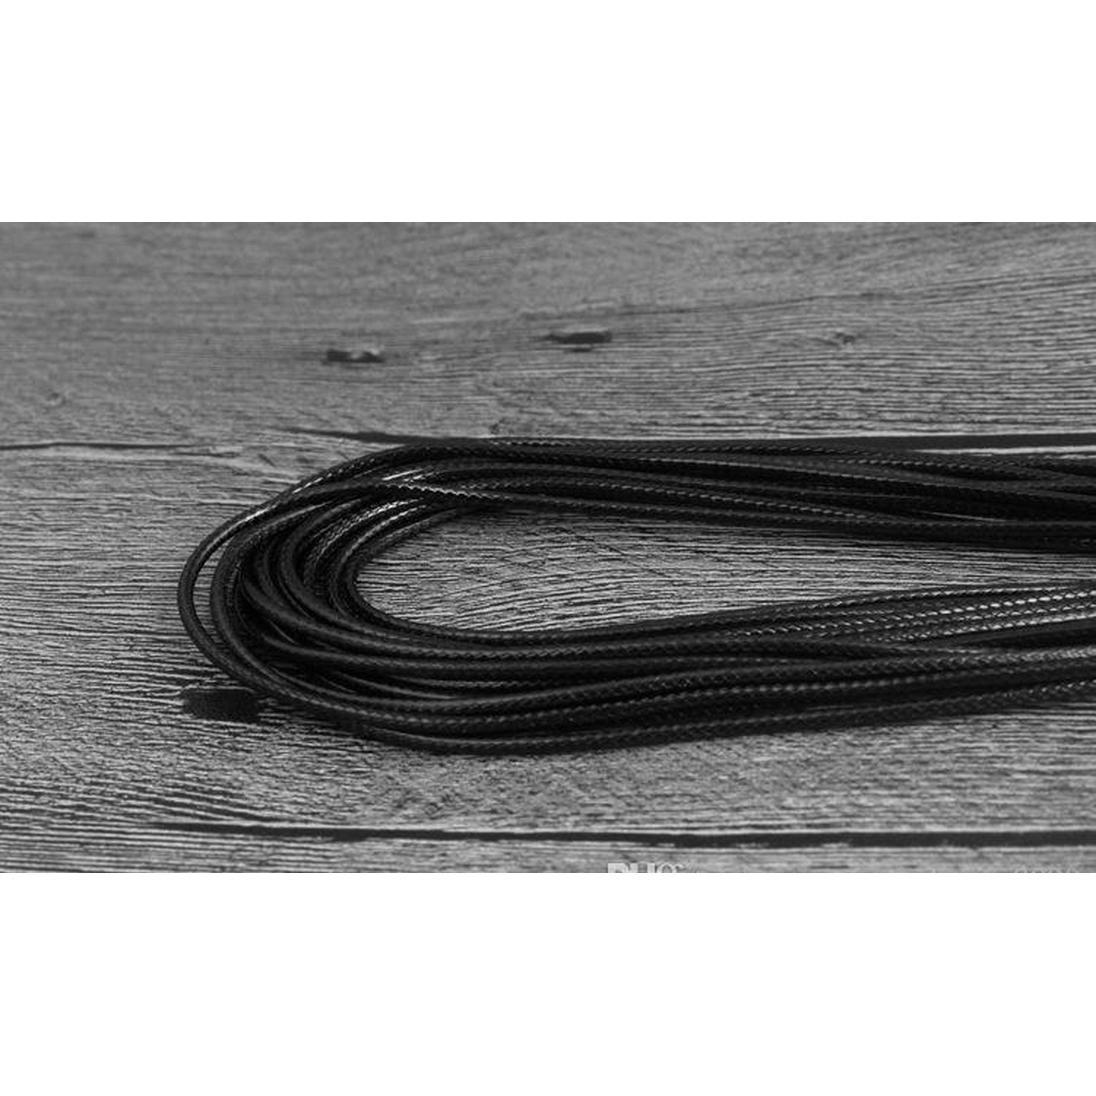 black wax leather snake necklace 45cm 60cm cord string rope wire extender chain with lobster clasp diy fashion jewelry component in